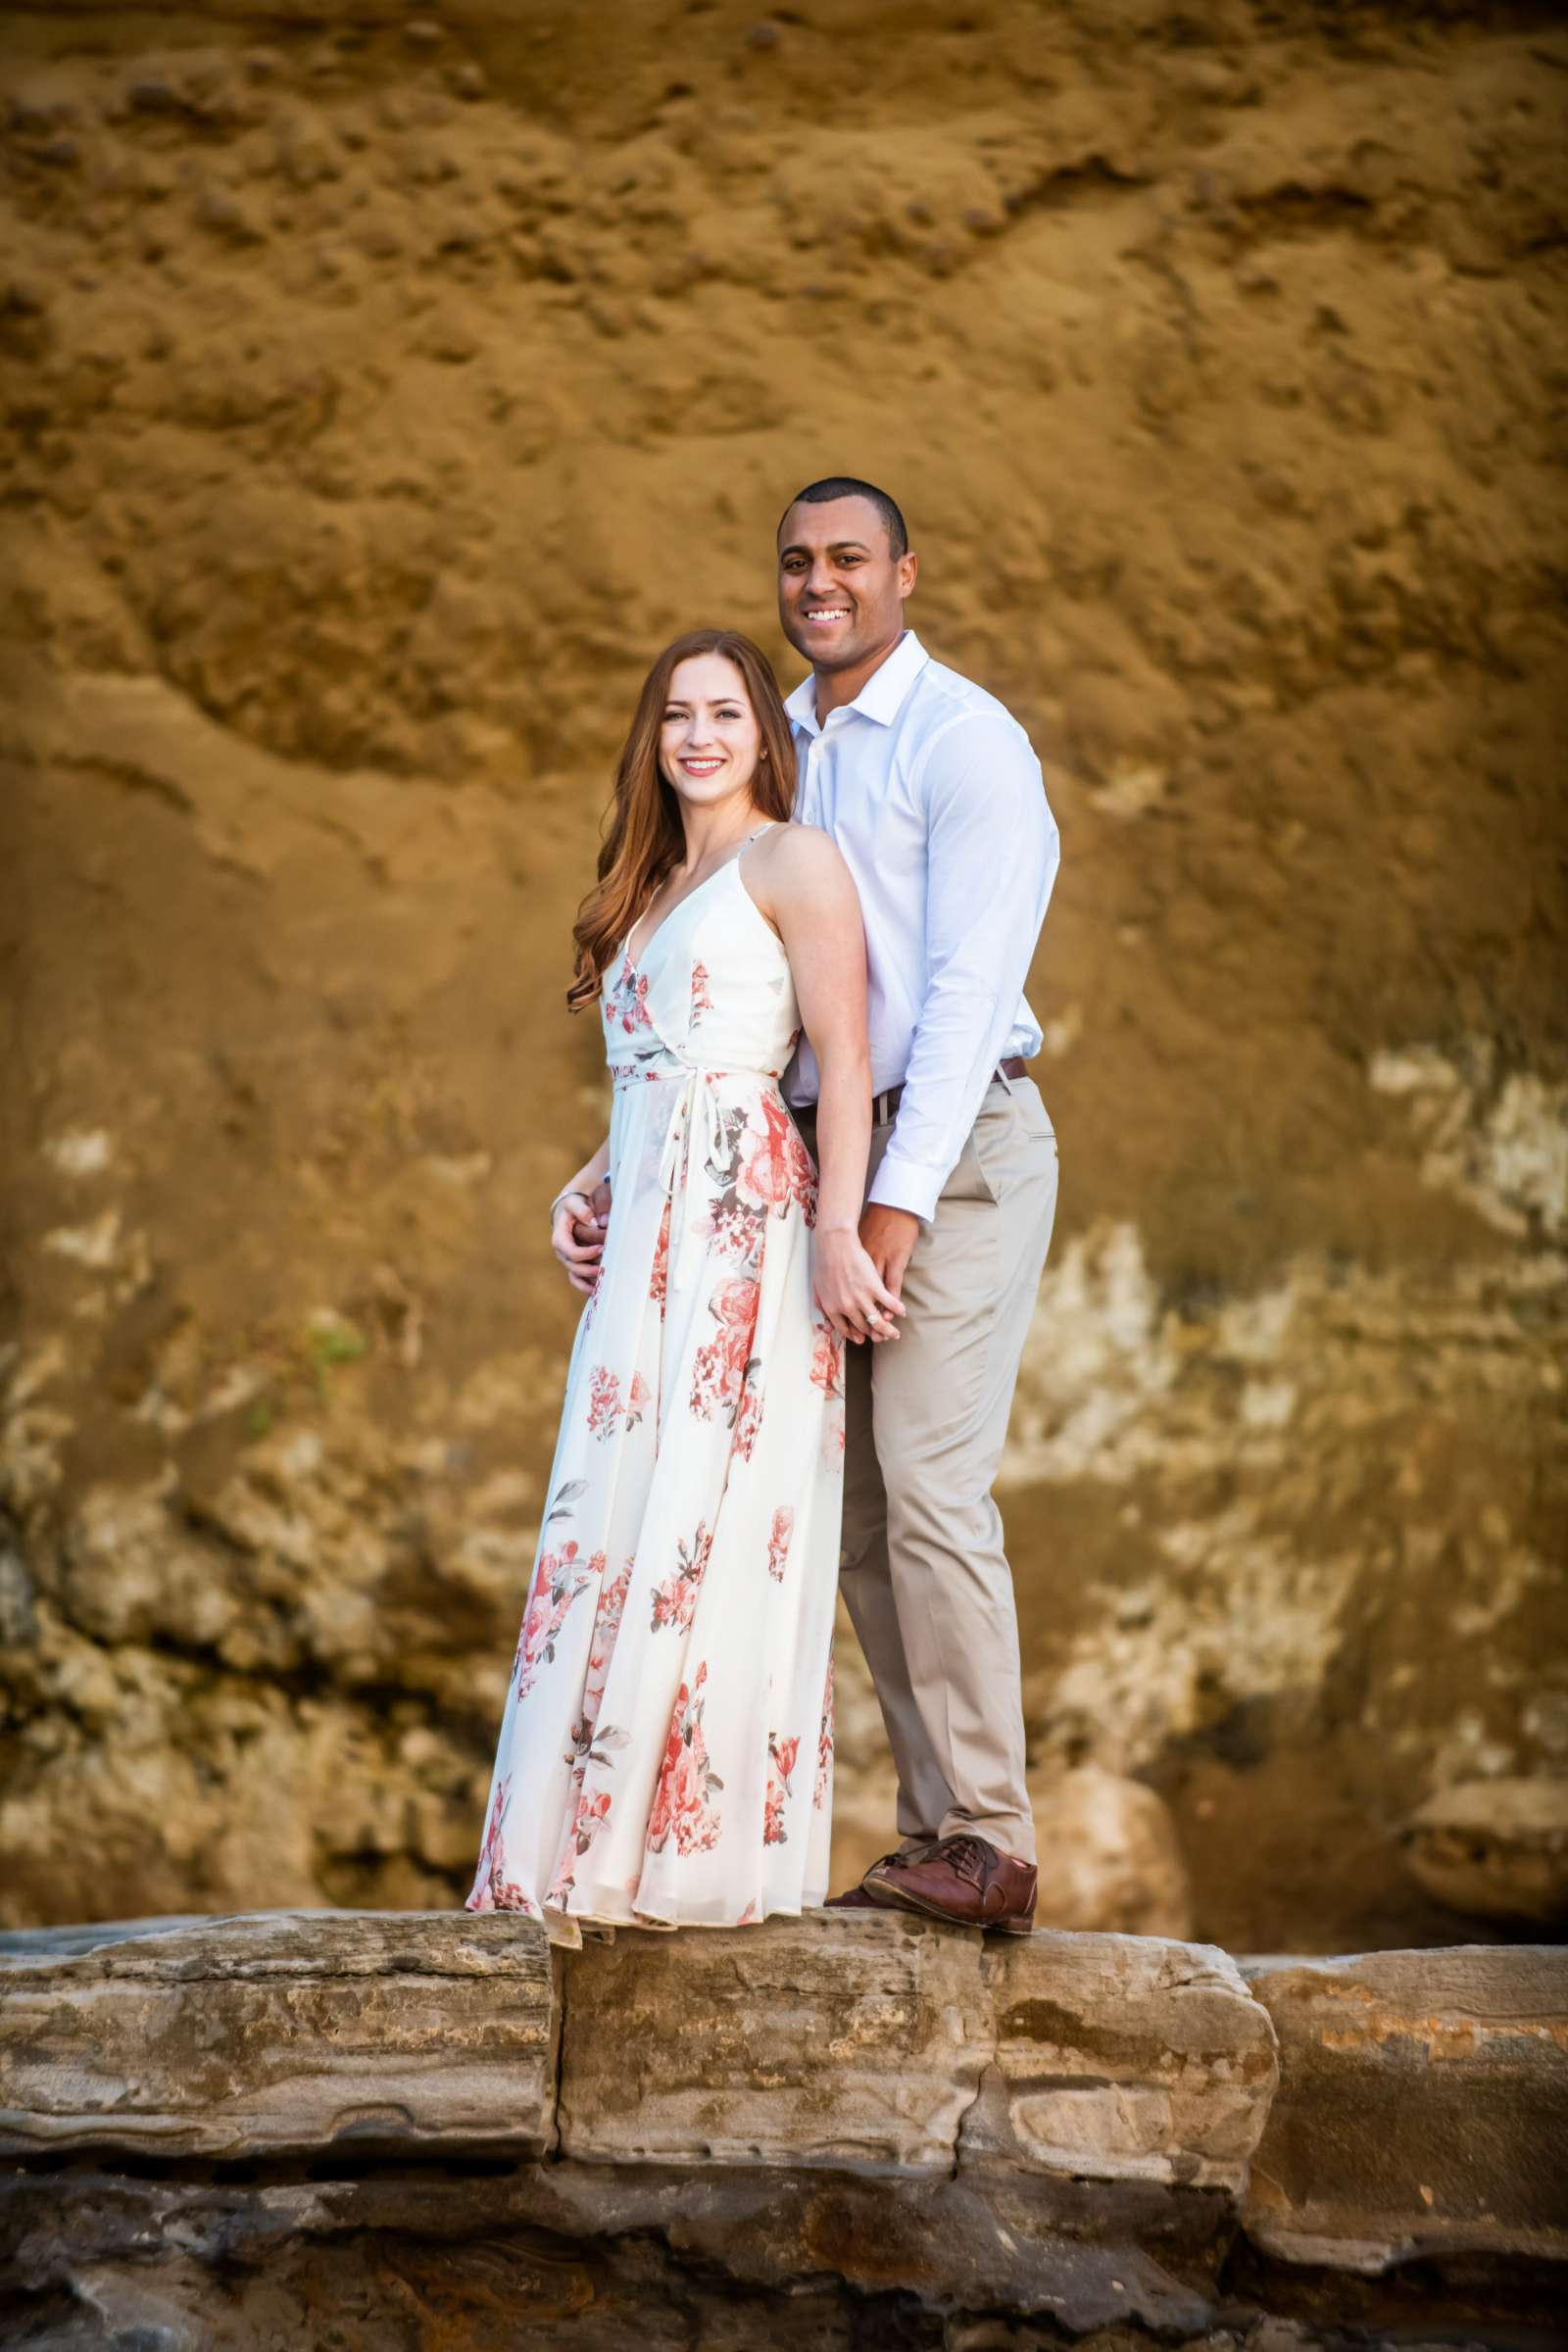 Engagement, Alexia and Kalin Engagement Photo #617334 by True Photography